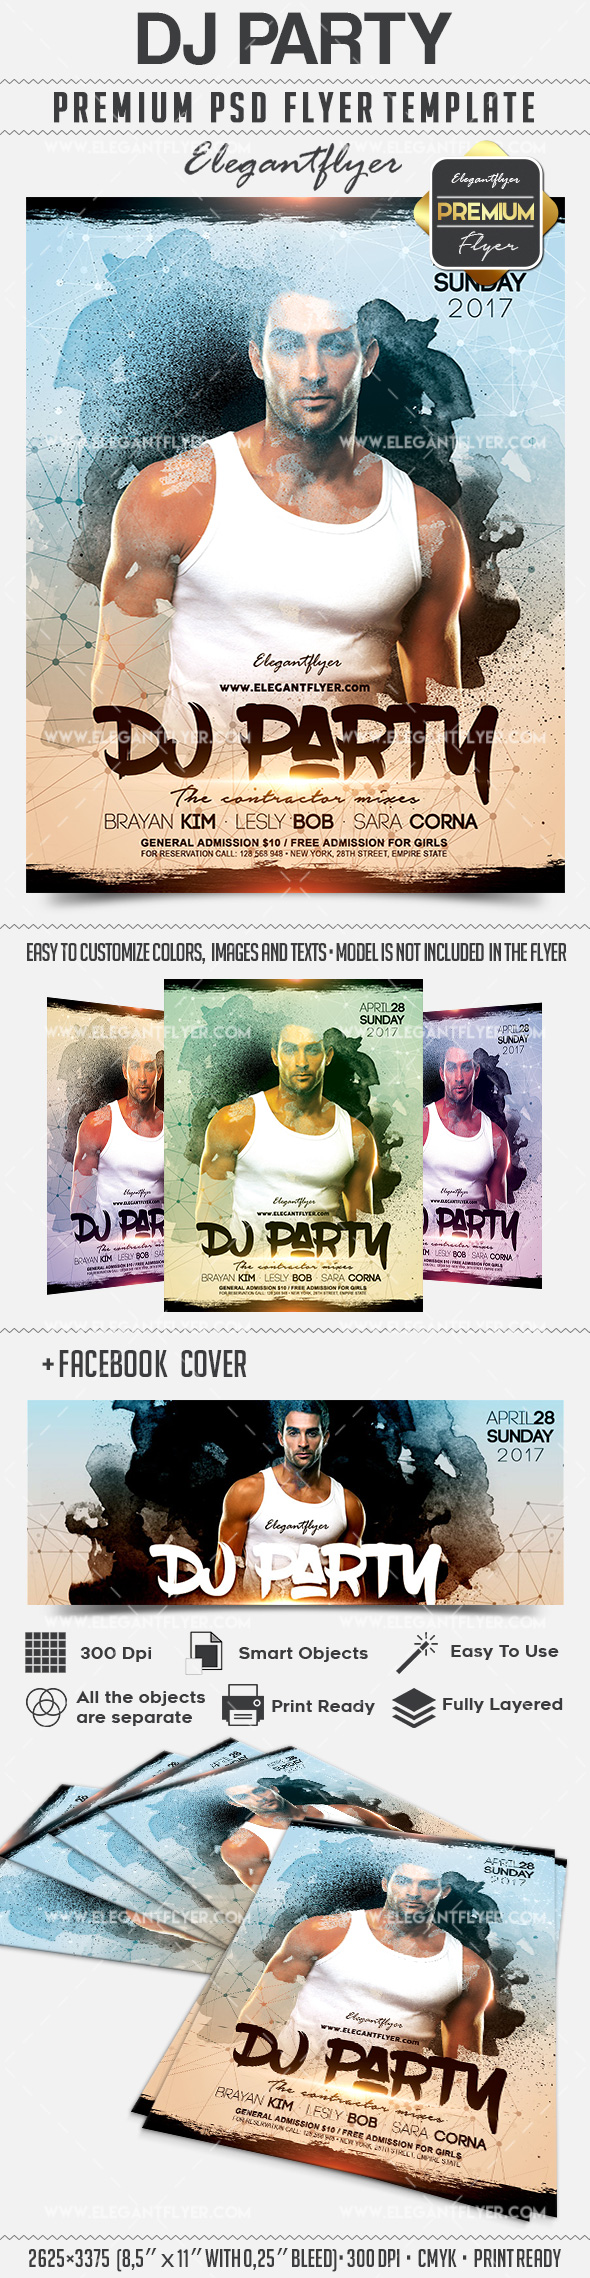 Dj for Parties Poster